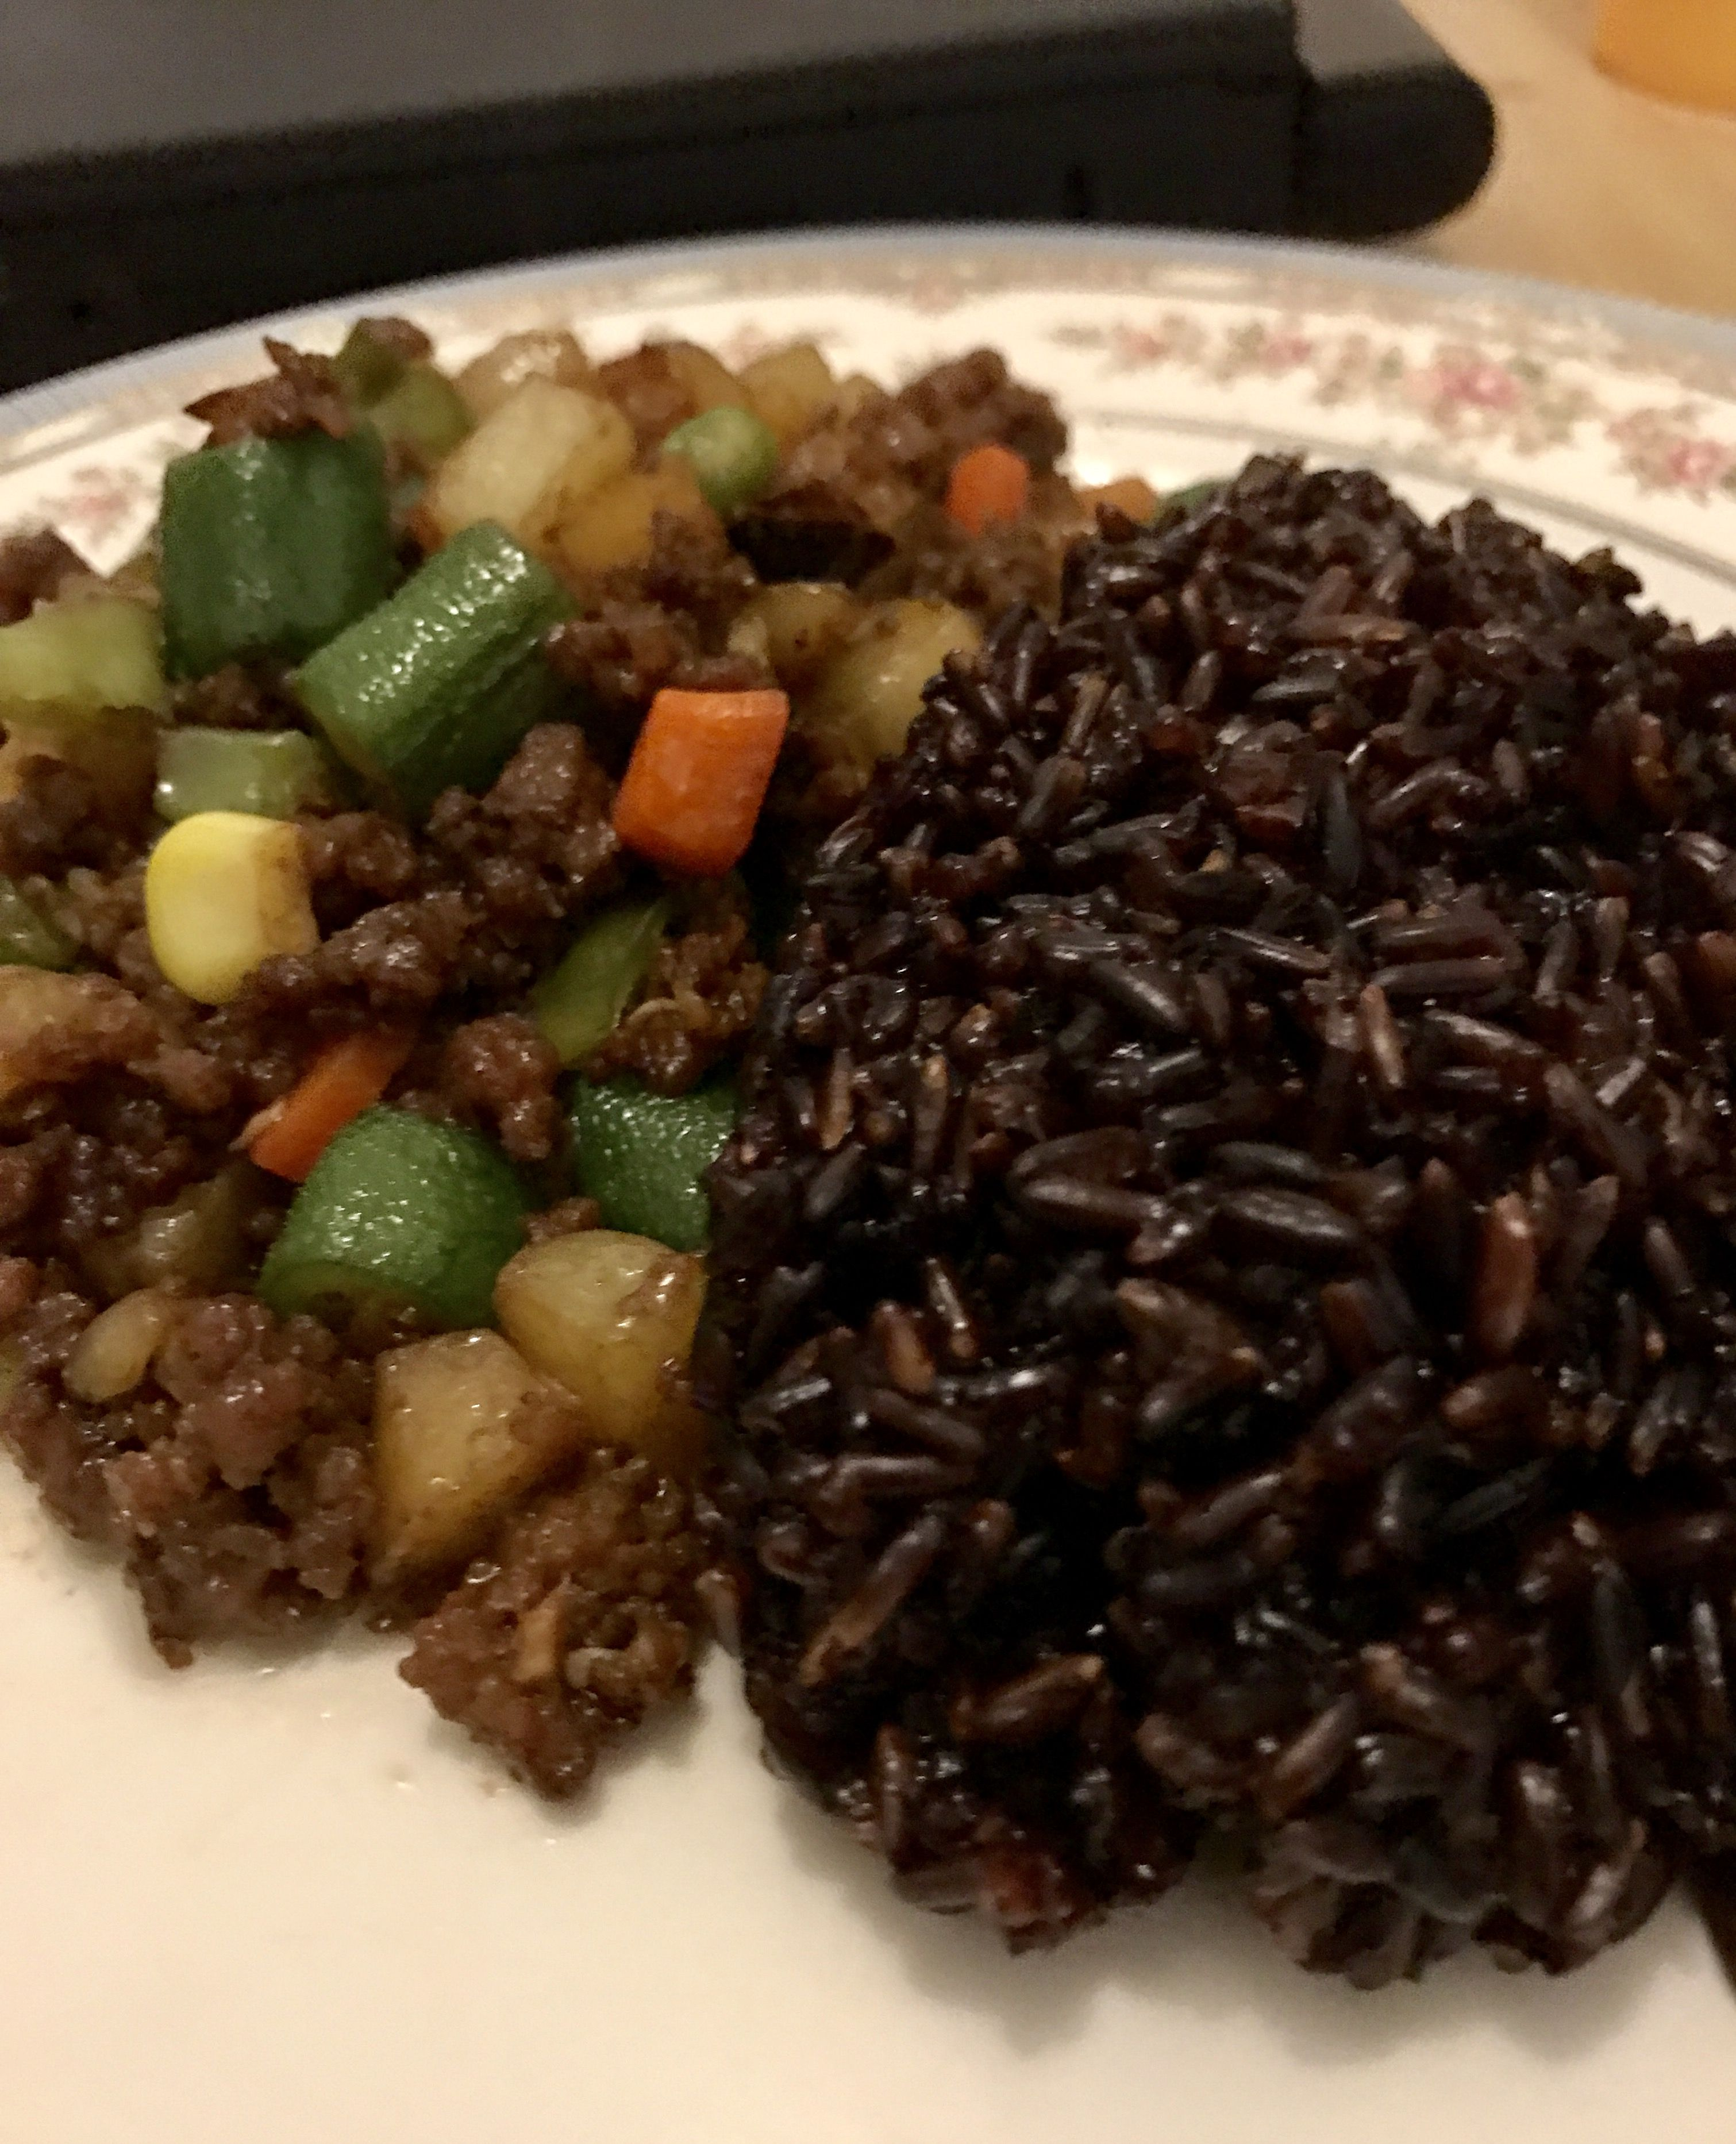 Chinese Style Ground Beef Served With Black Rice 1 4 Kg Ground Lean Beef 1 4 Cup Oyster Sauce 3 Tbsps Chin Cooking Black Rice Lean Beef Chopped Carrots